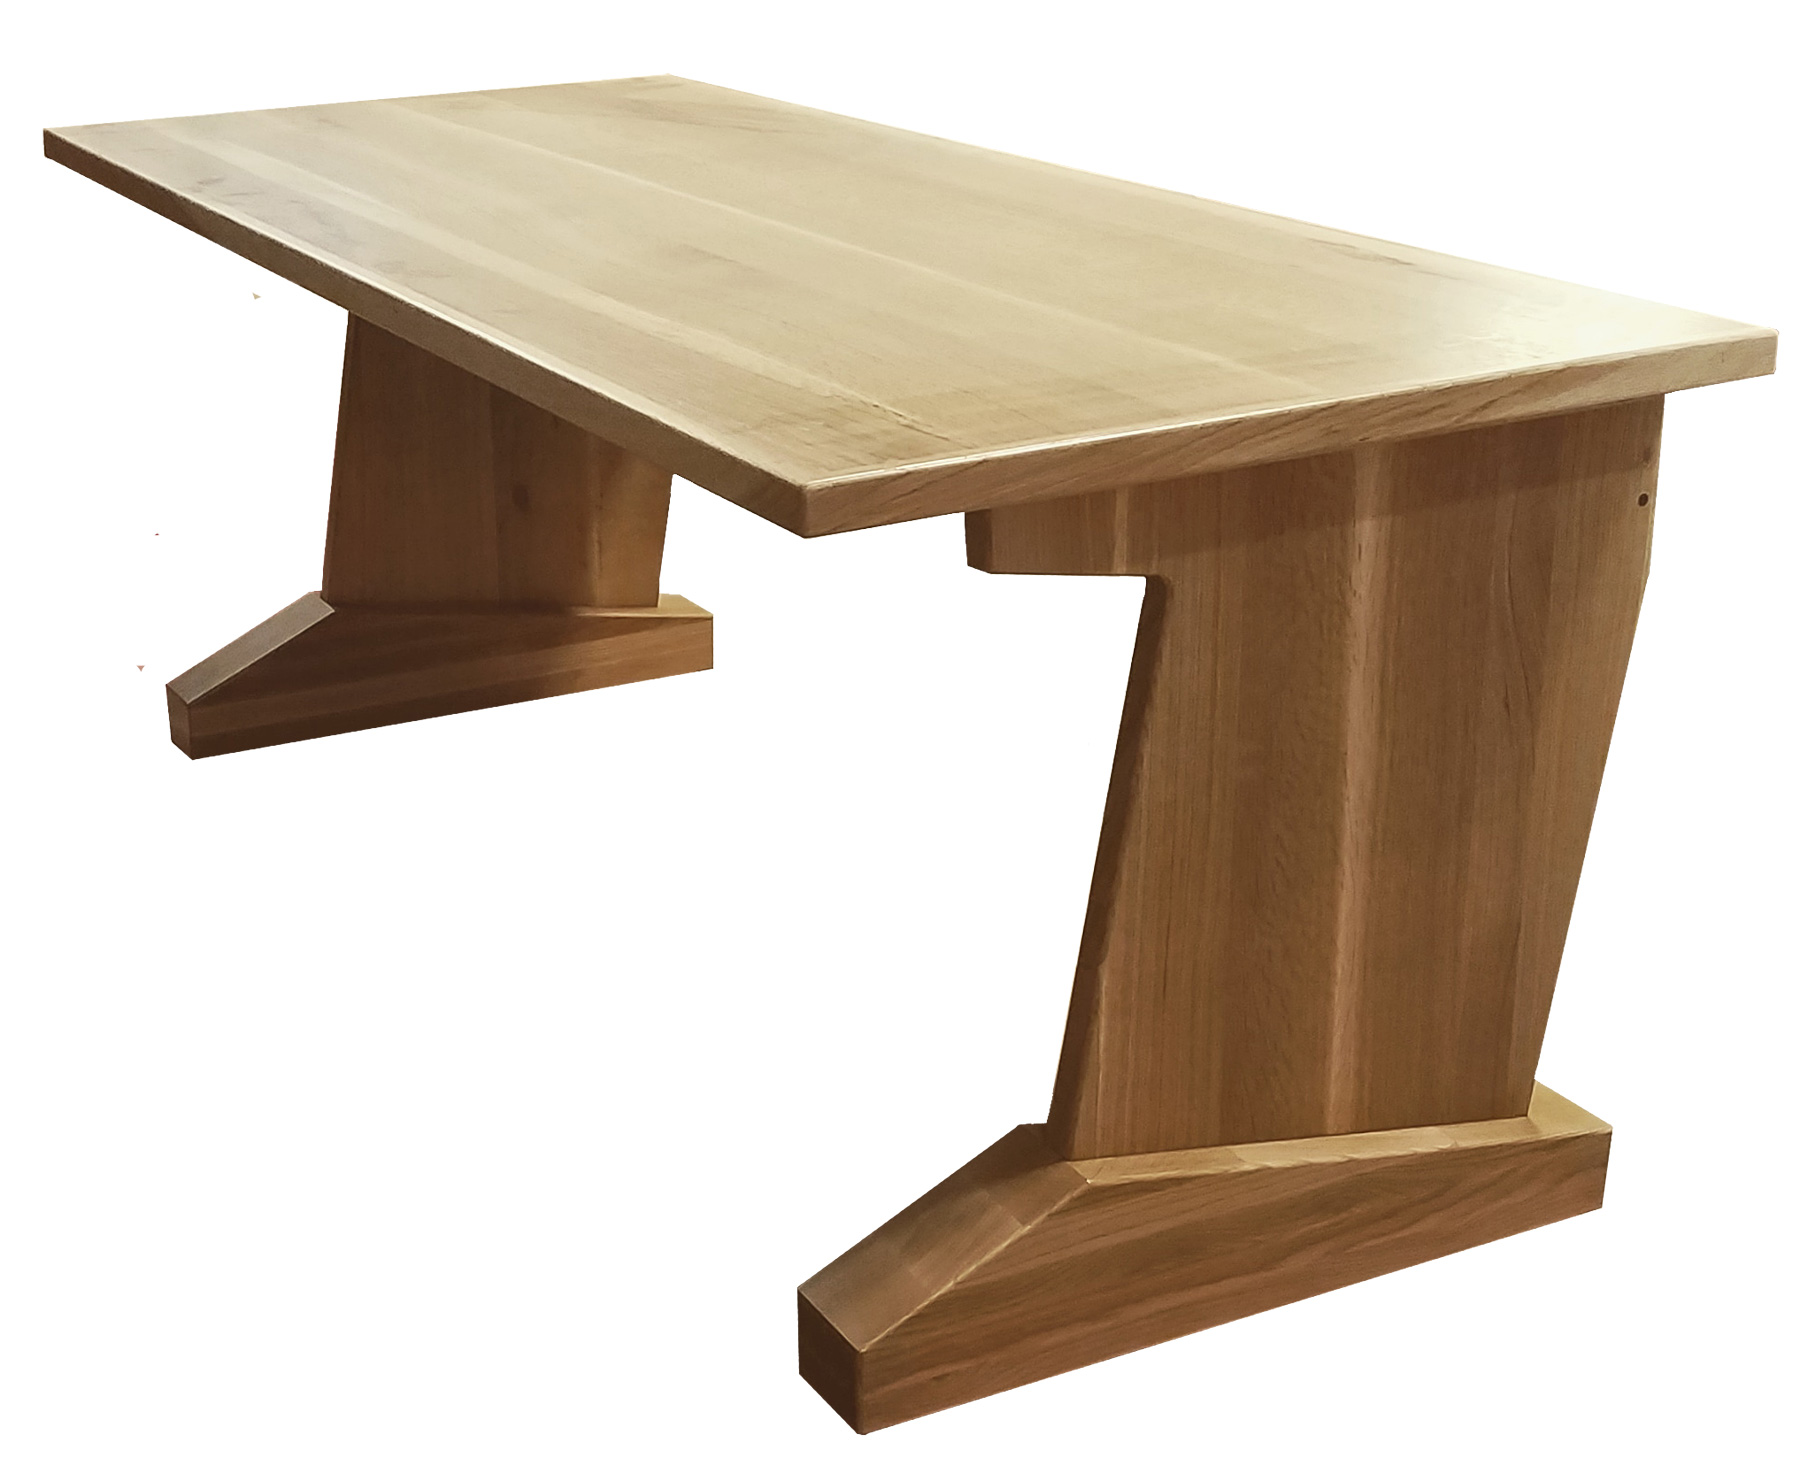 Wandplank 30 Diep.Audiorax Desk Design D 30 Deep X 72 Wide Solid Wood Desk Top Solid Wood Desk Legs Solid White Oak With Clear Lacquer